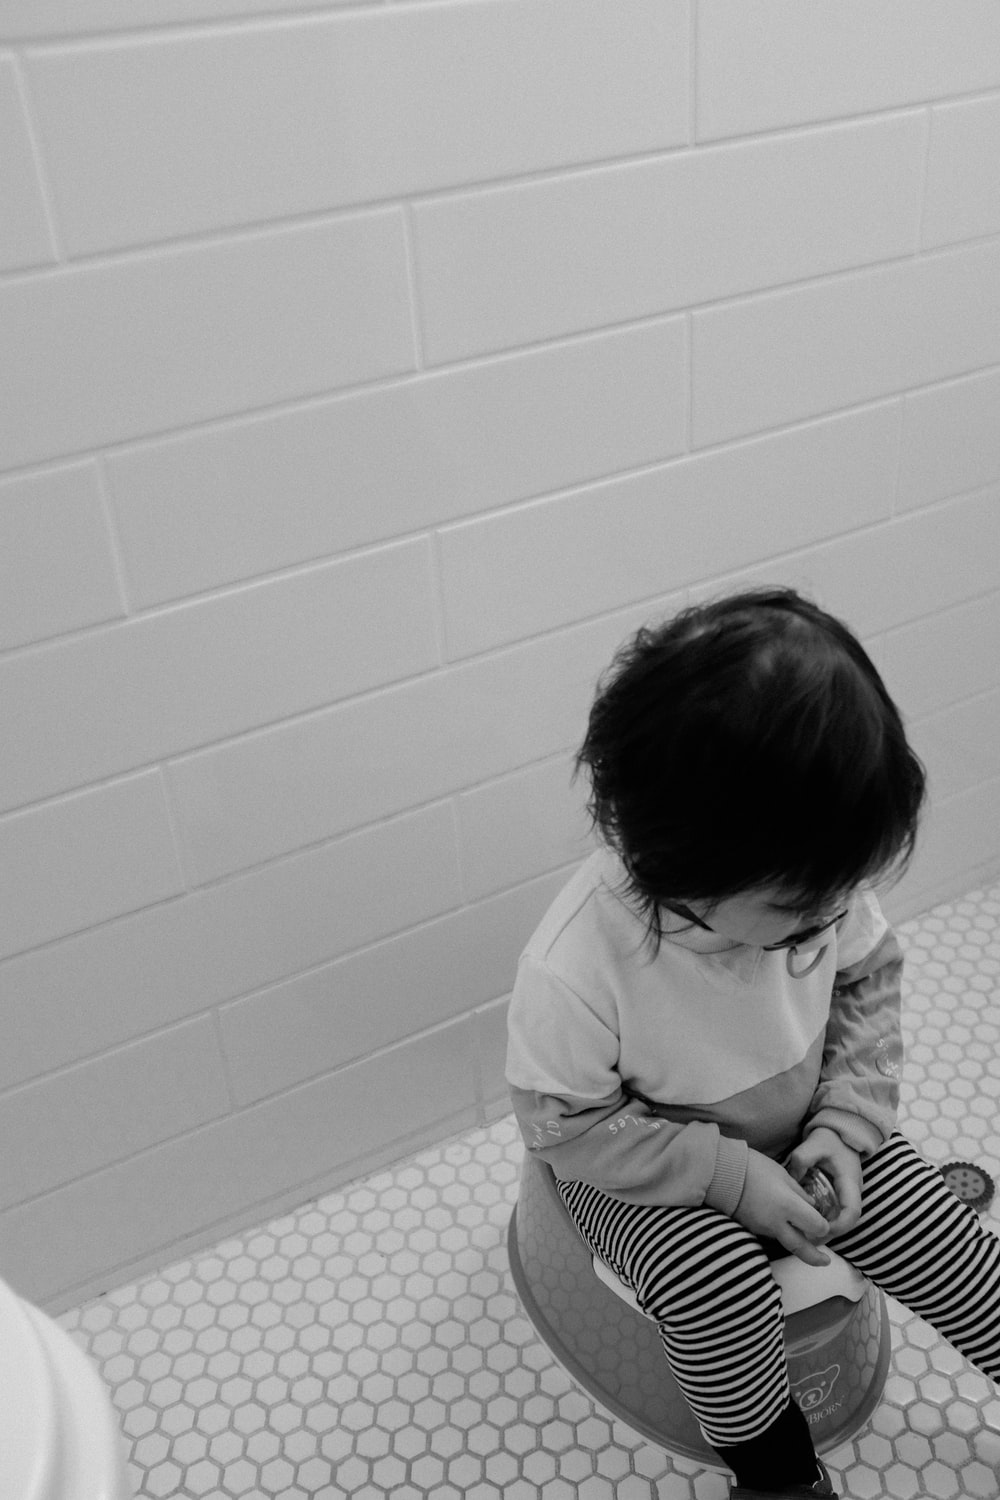 grayscale photo of child in white long sleeve shirt sitting on floor